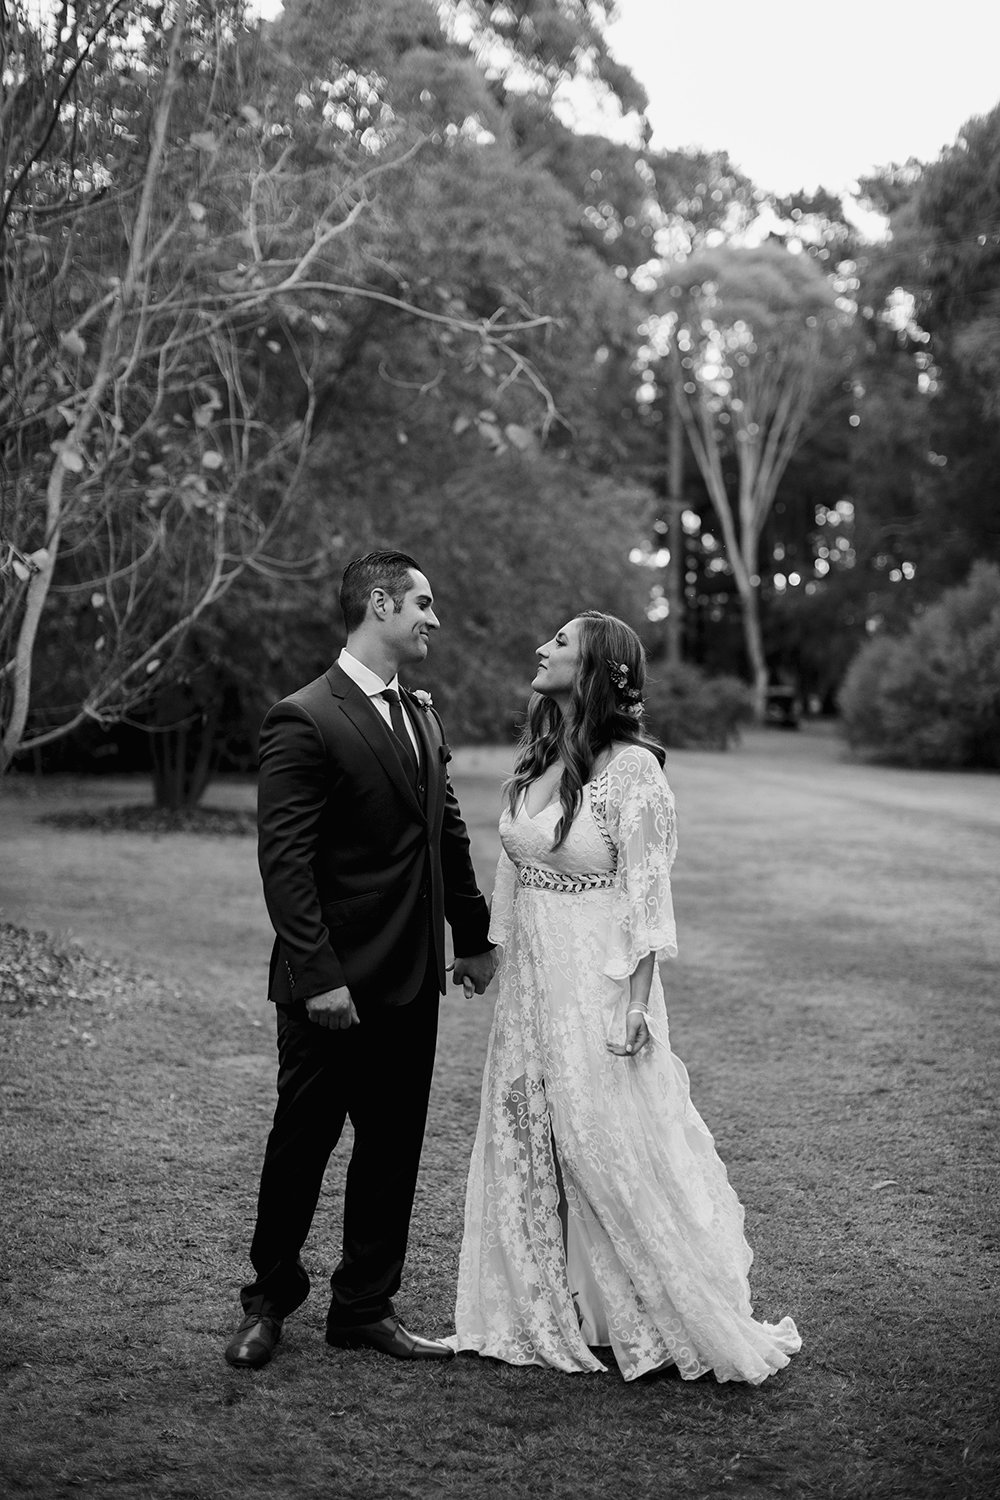 Candid love-filled moment captured by Monika berry Wedding Photographer Melbourne and Geelong